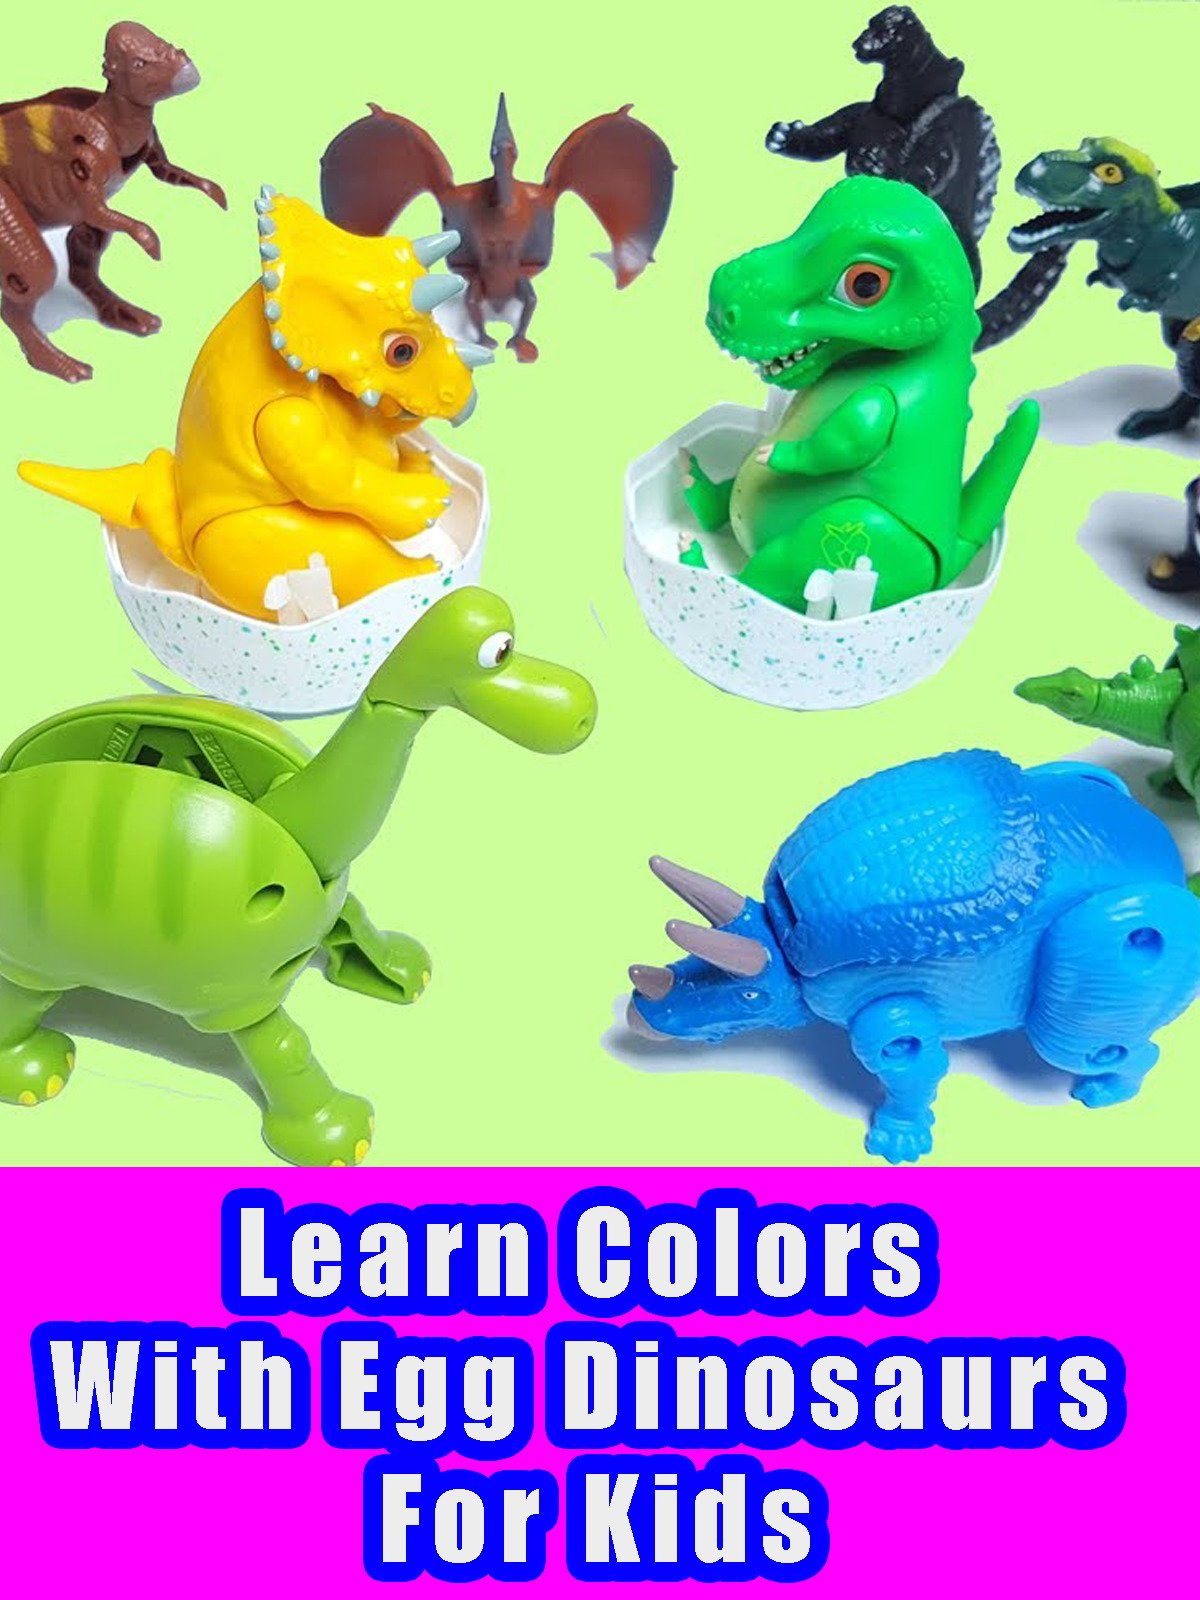 Learn Colors With Egg Dinosaurs For Kids on Amazon Prime Video UK